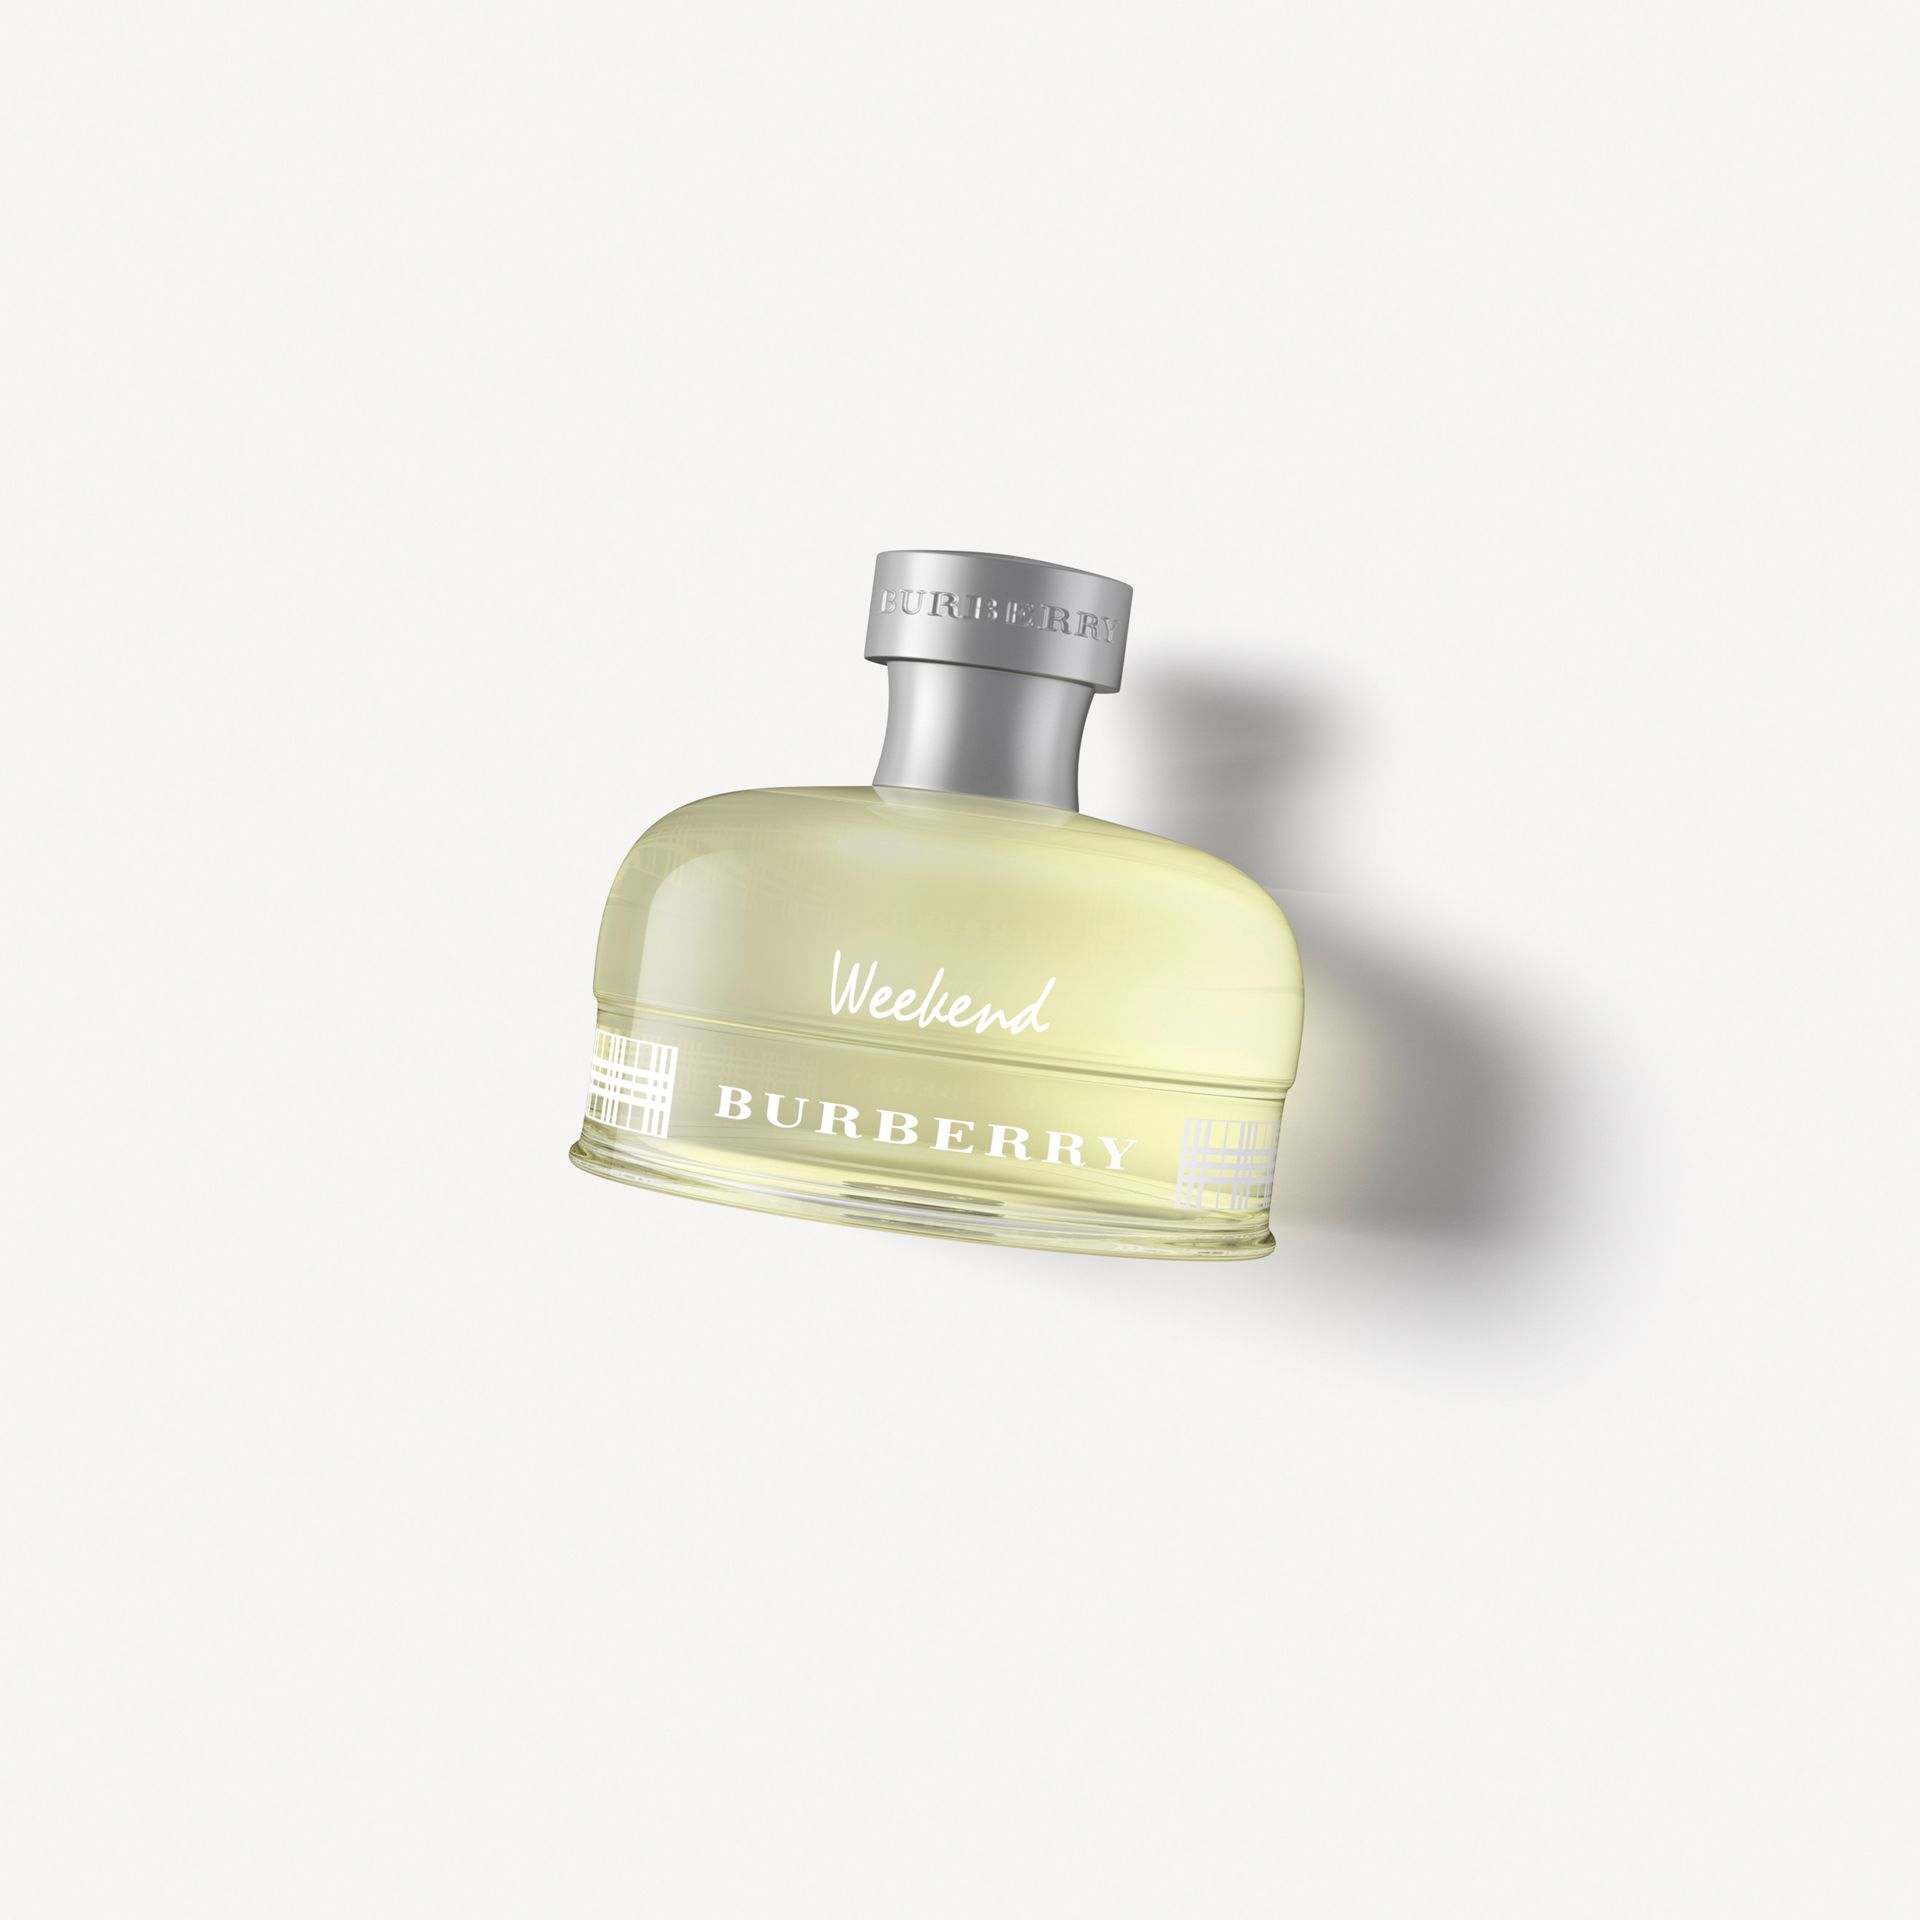 Burberry Weekend Eau de Parfum 100ml - Women | Burberry United Kingdom - gallery image 0